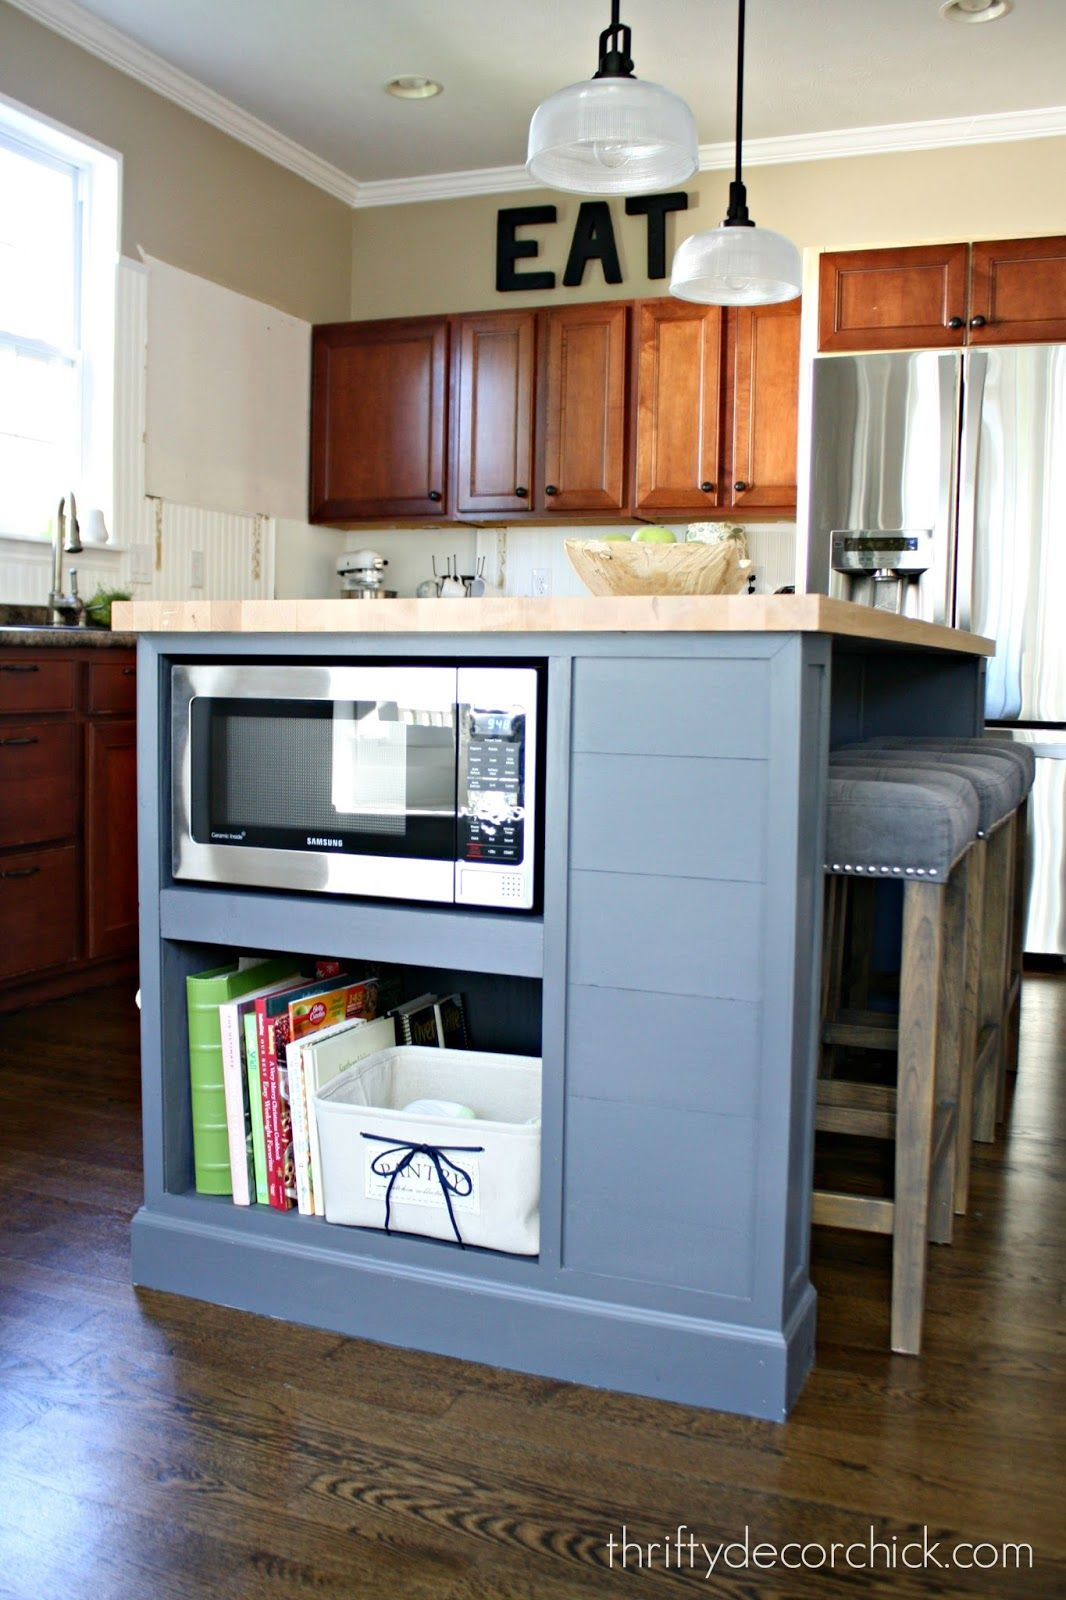 Superb Built In Microwave In Your Kitchen Island   The BEST Idea Ever!